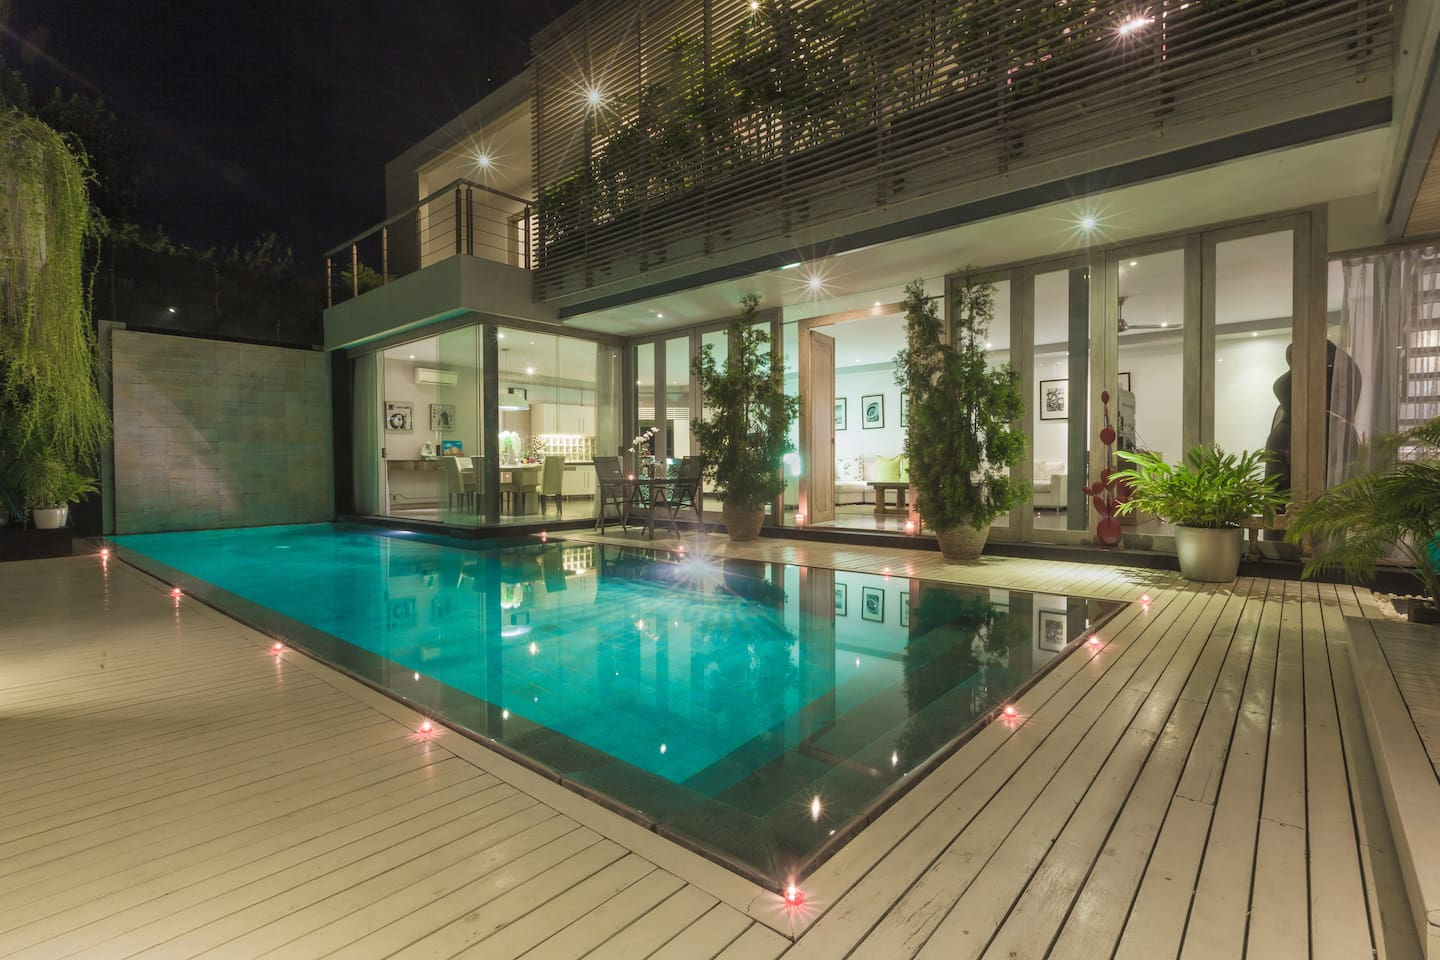 Spacious two store villa looks even better at night time